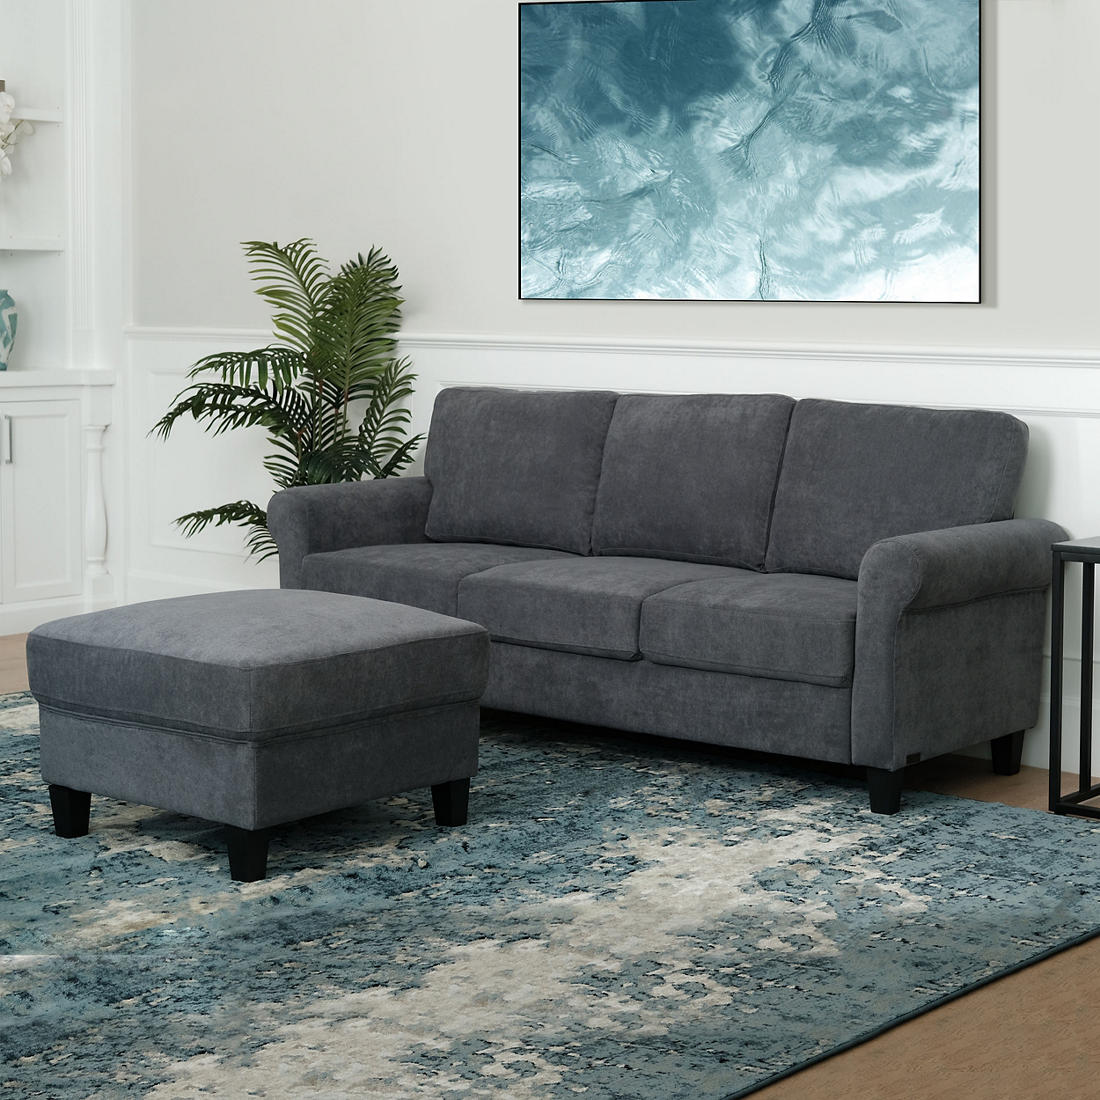 Astounding Abbyson Living Marianne 2 Pc Fabric Sofa And Ottoman Set Charcoal Alphanode Cool Chair Designs And Ideas Alphanodeonline